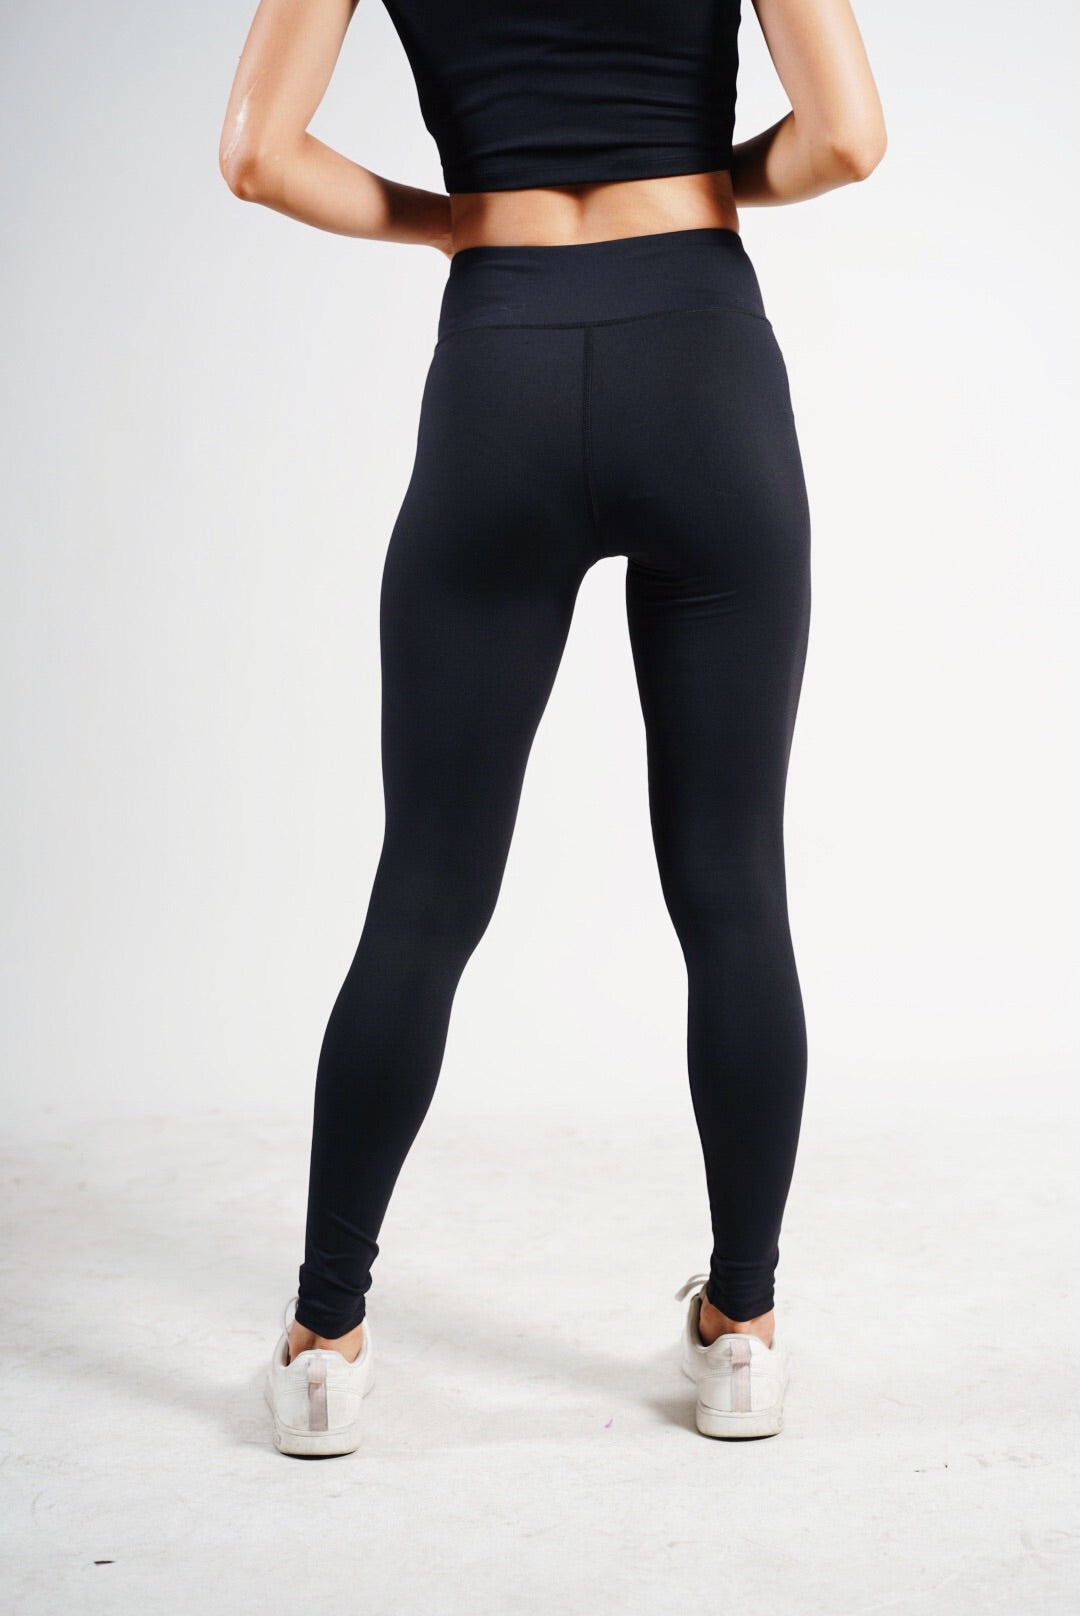 Shape Up Leggings - Black